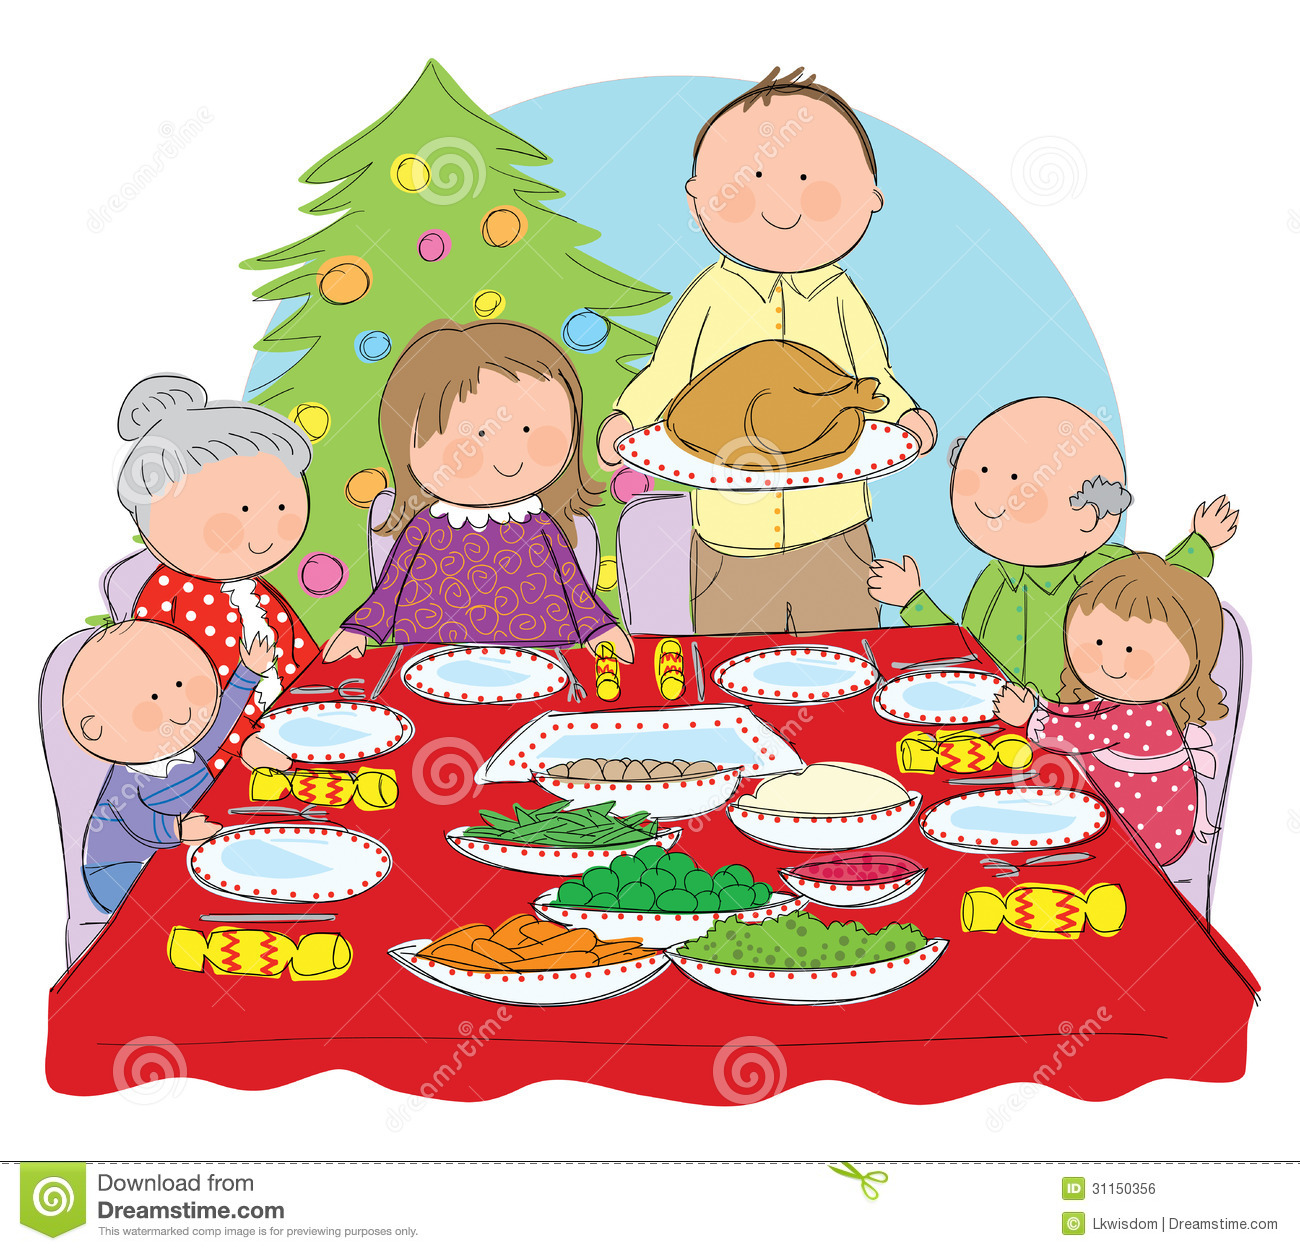 Christmas Dinner Royalty Free Stock Image   Image  31150356